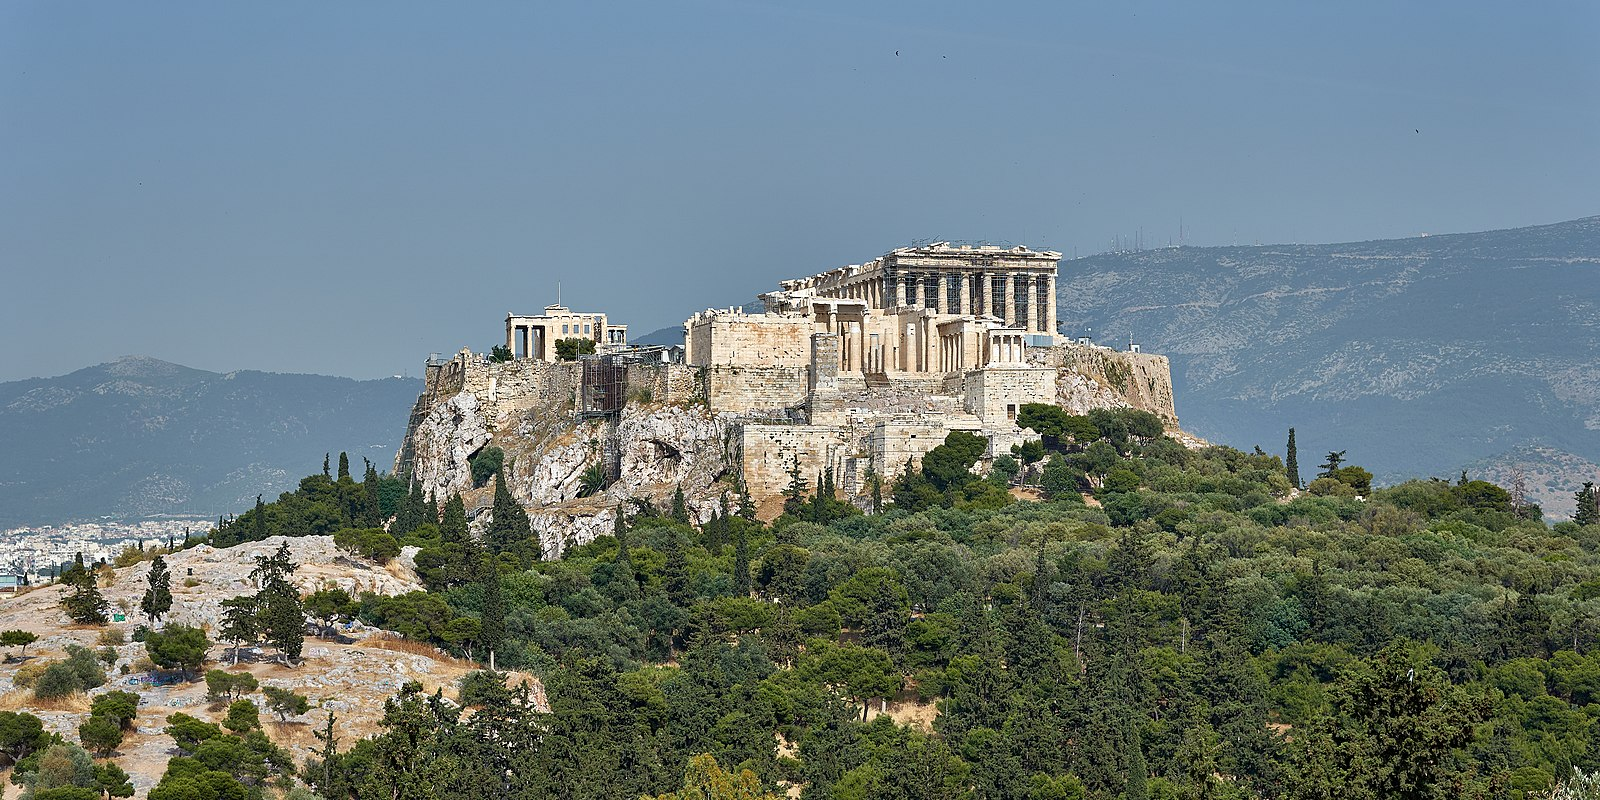 Areopagus and Acropolis